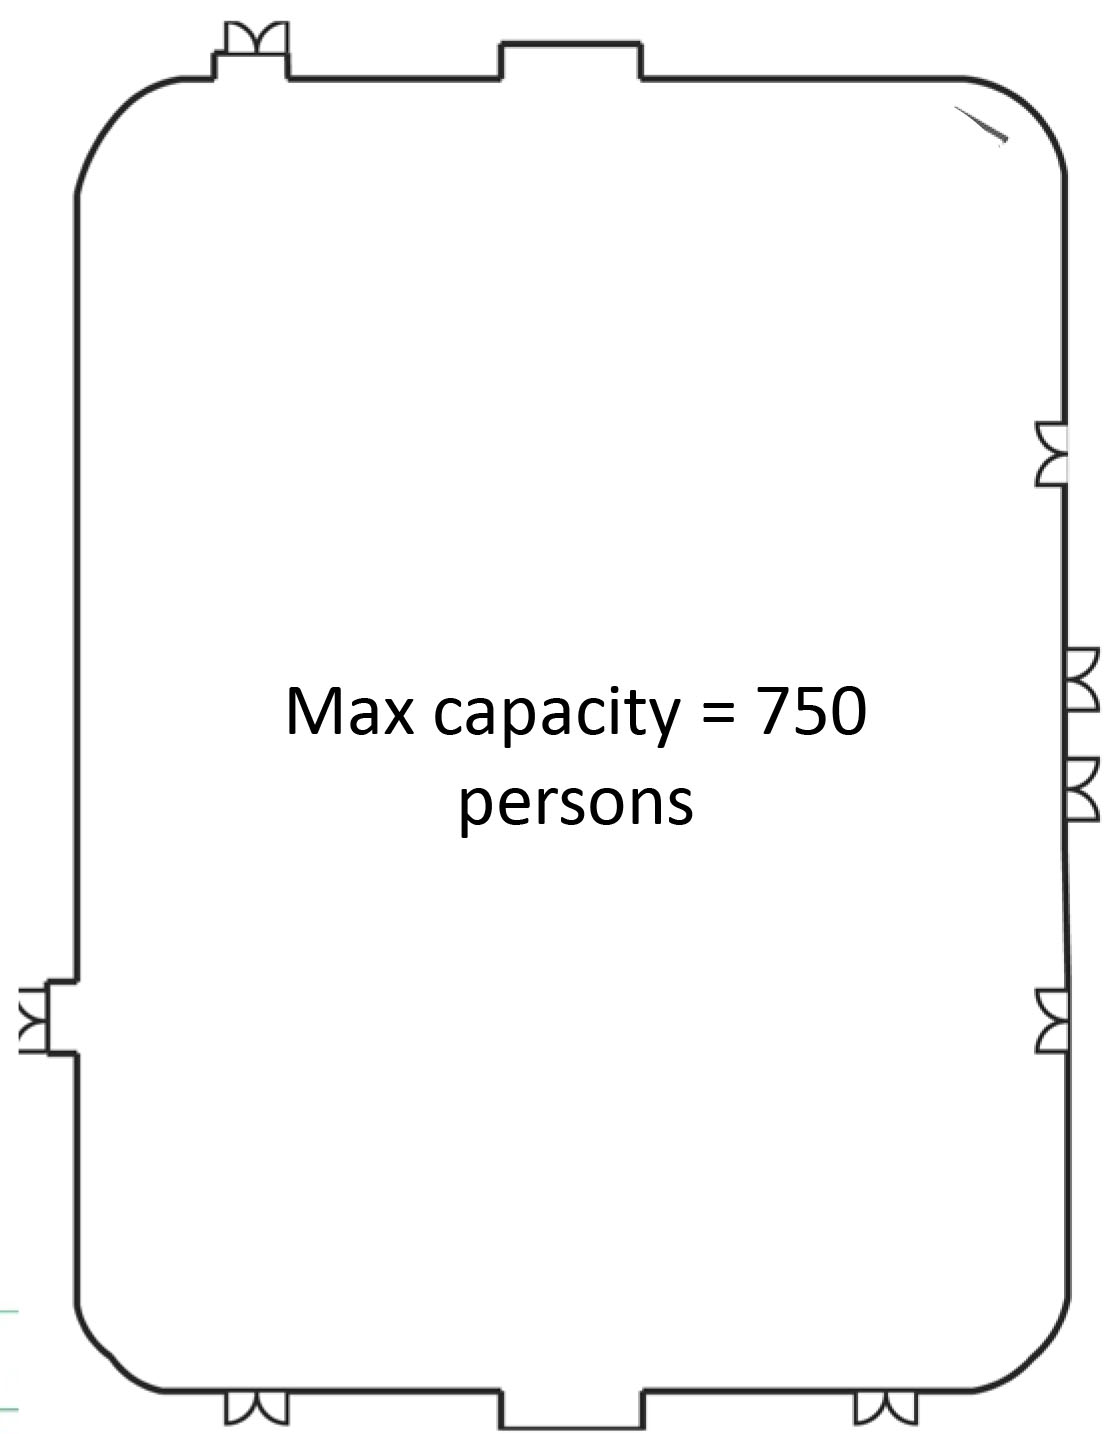 Multipurpose Activity Center Floor Plan